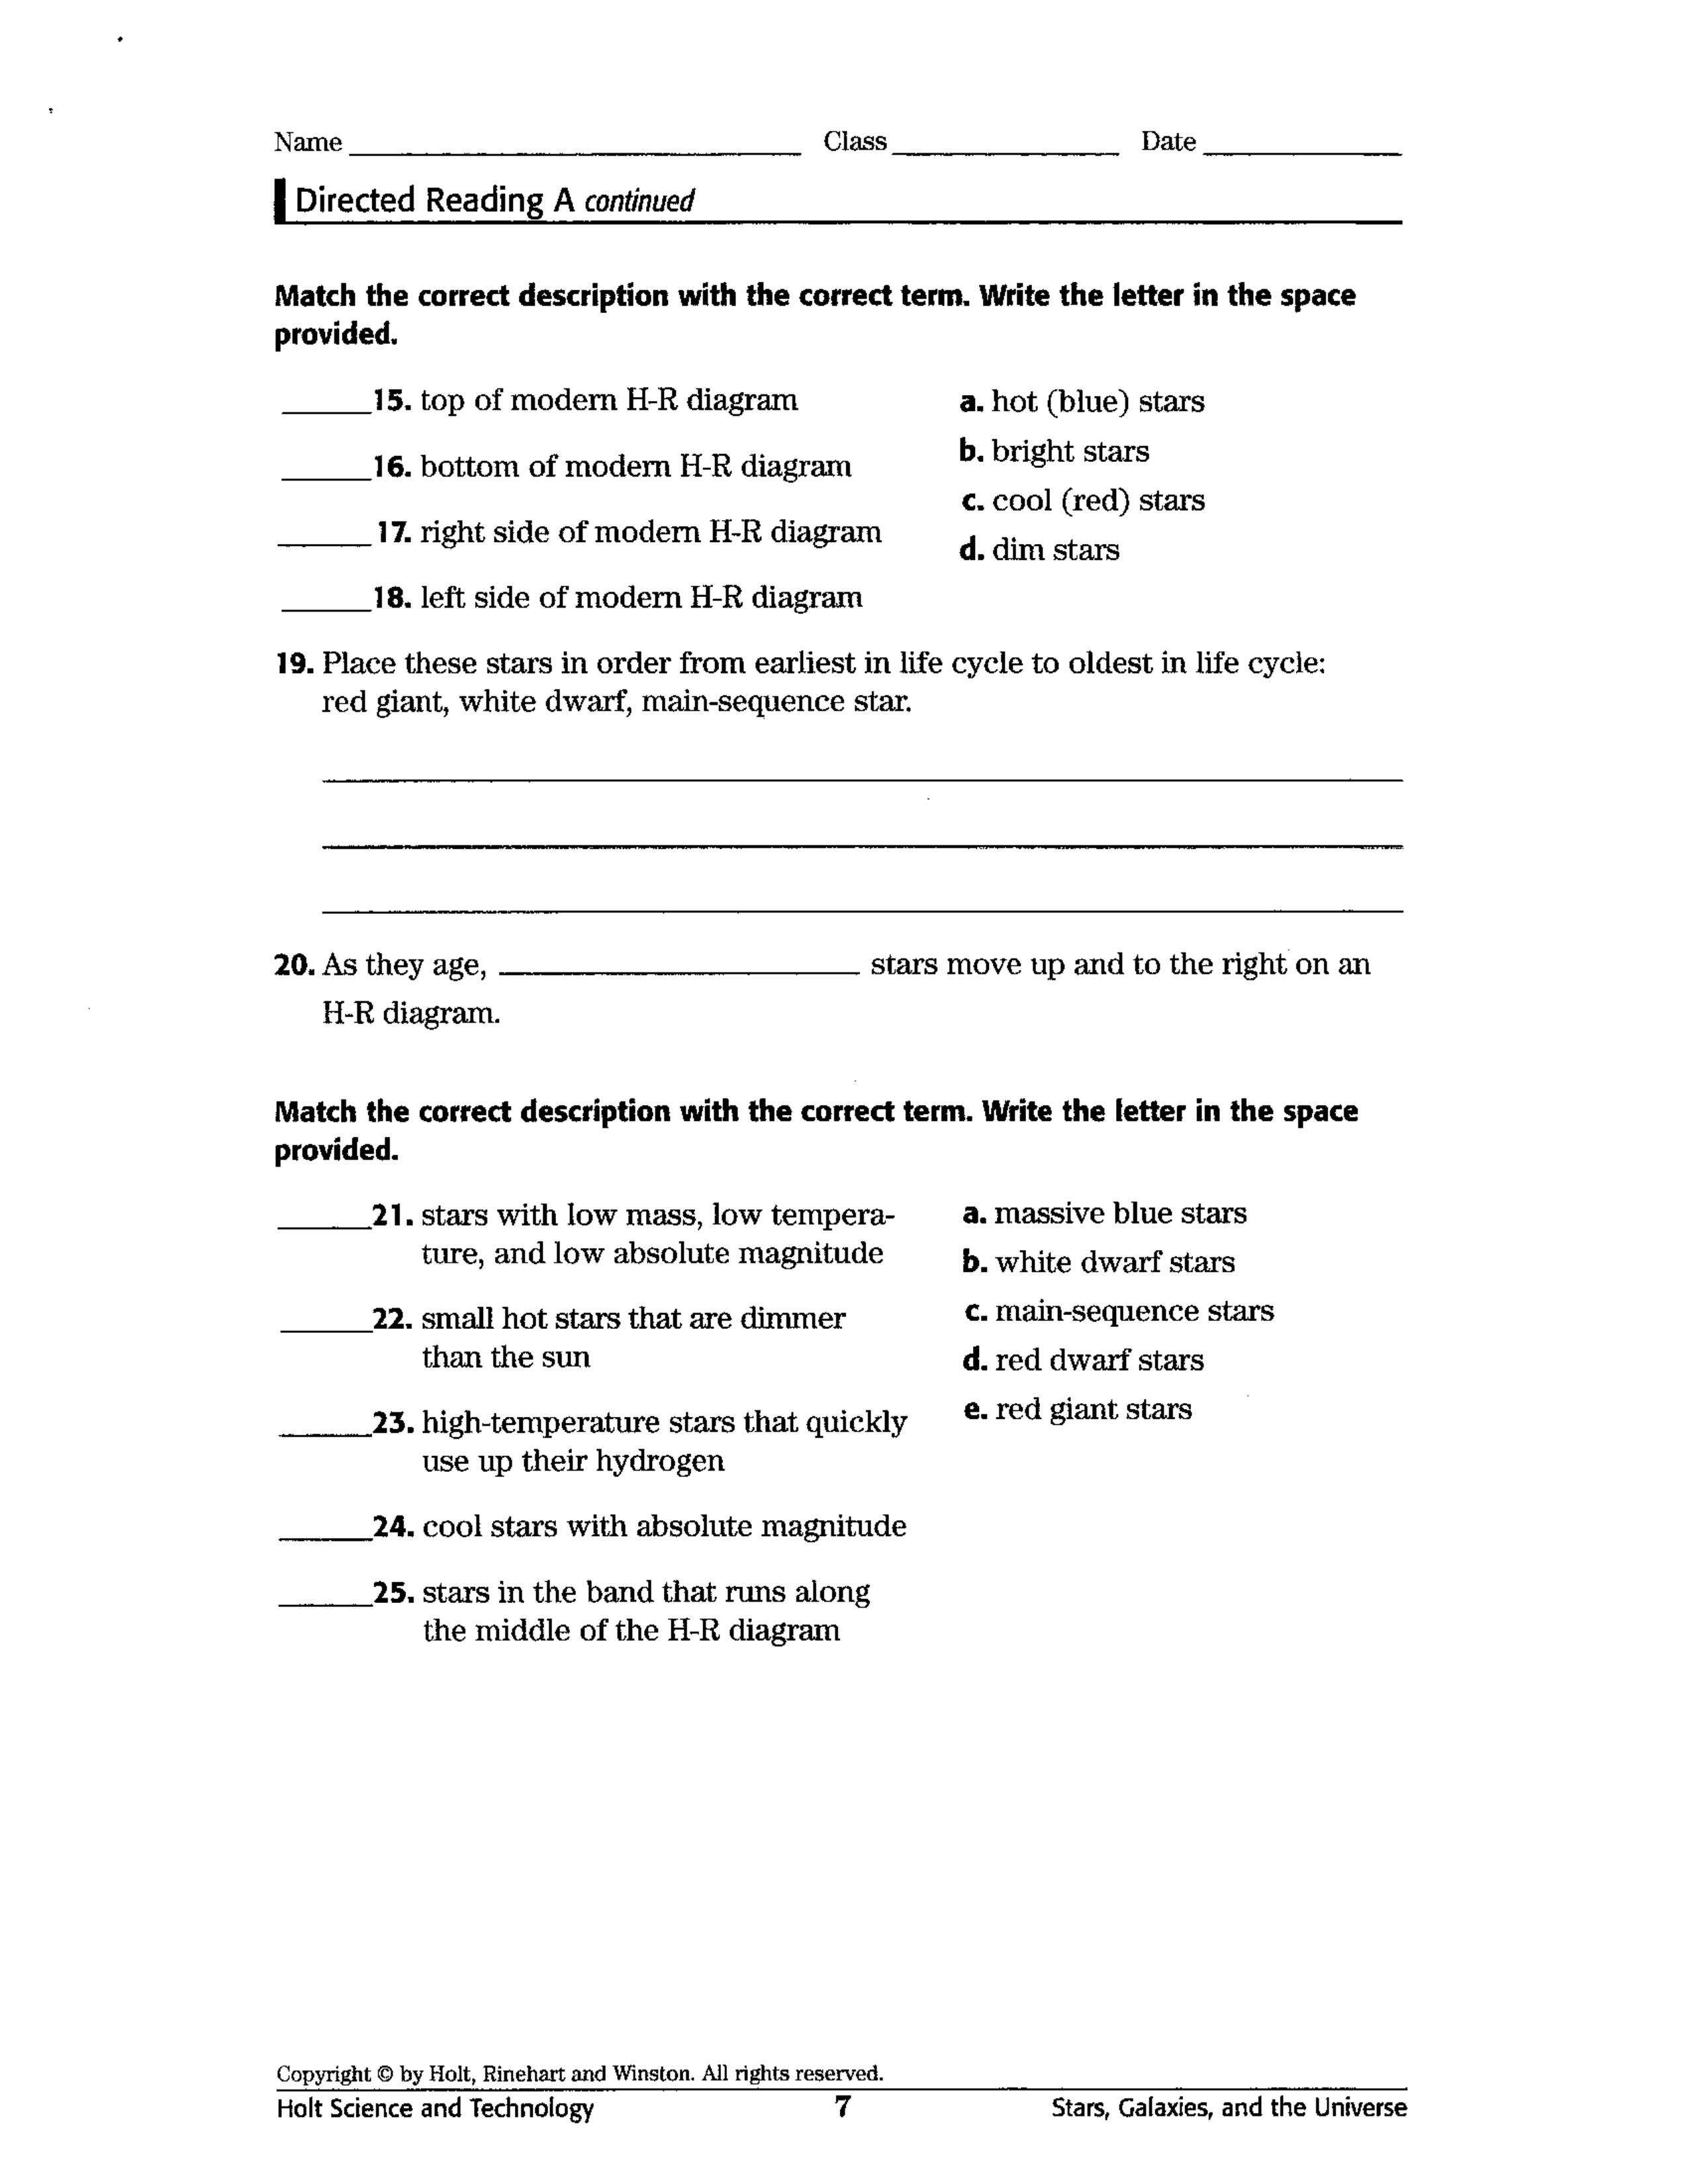 The Life Cycle Of Stars Worksheet